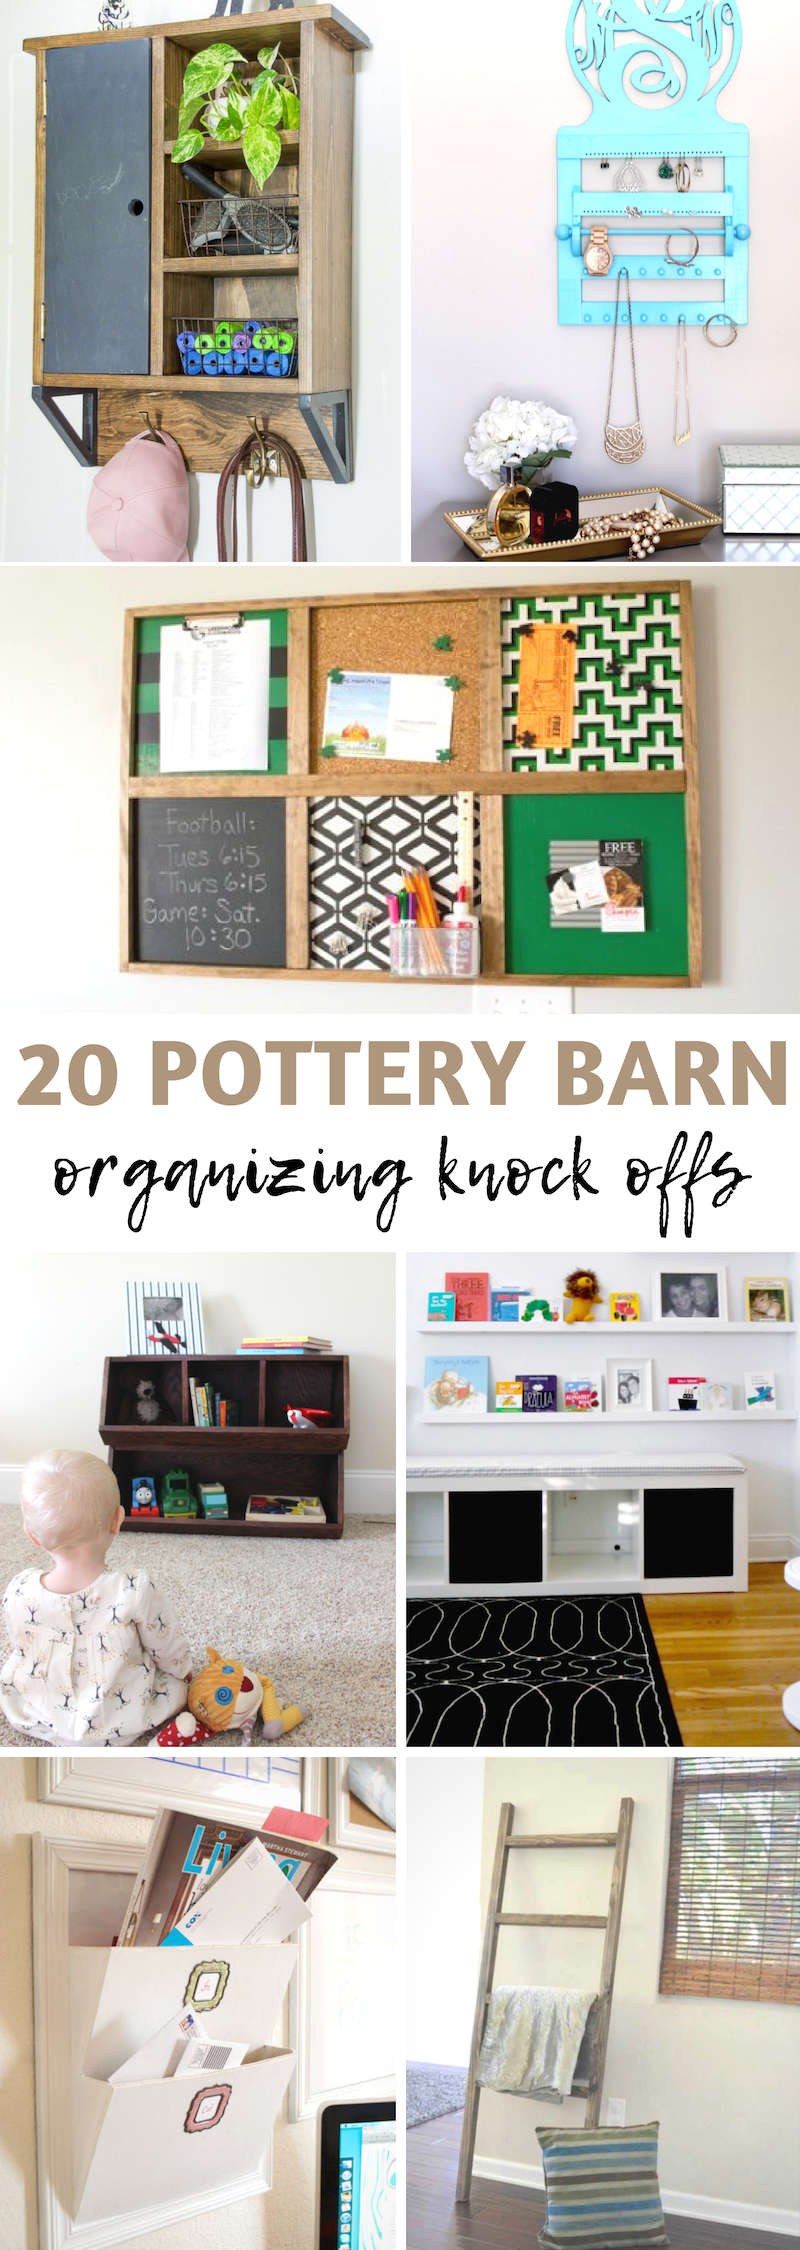 Pottery Barn Organizing Knock Offs